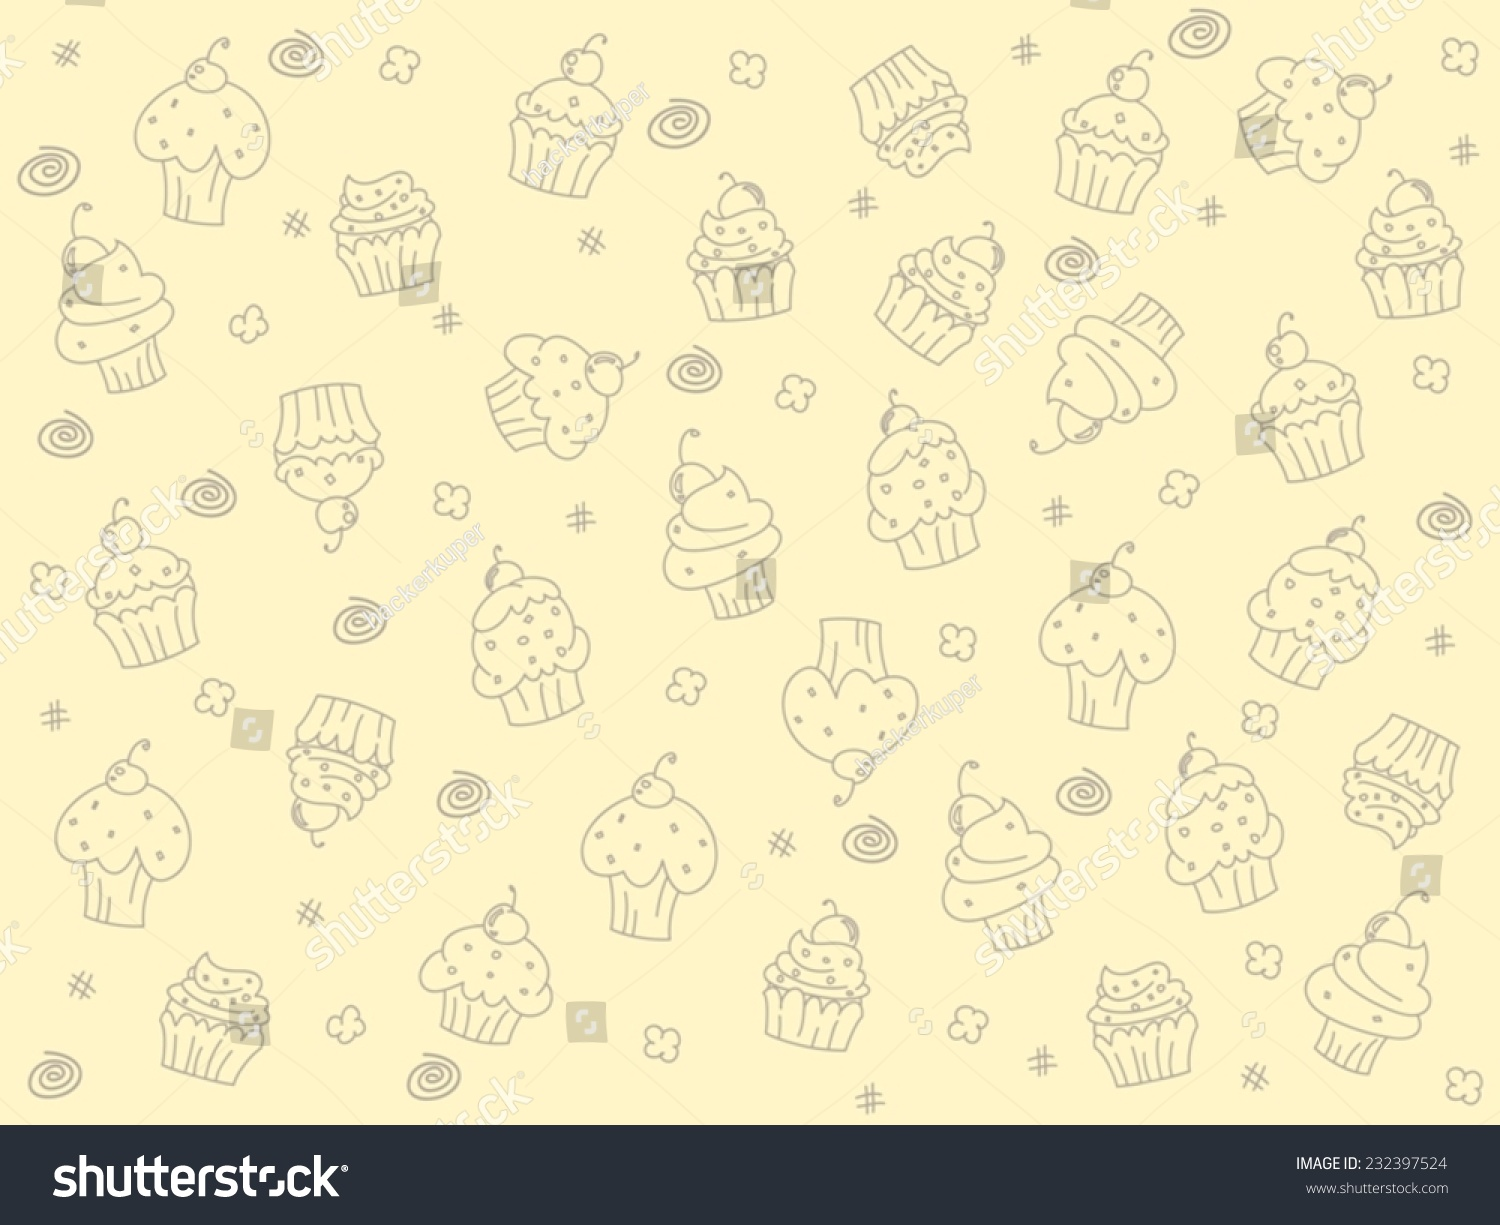 Vintage Cupcakes Outline Vector Background